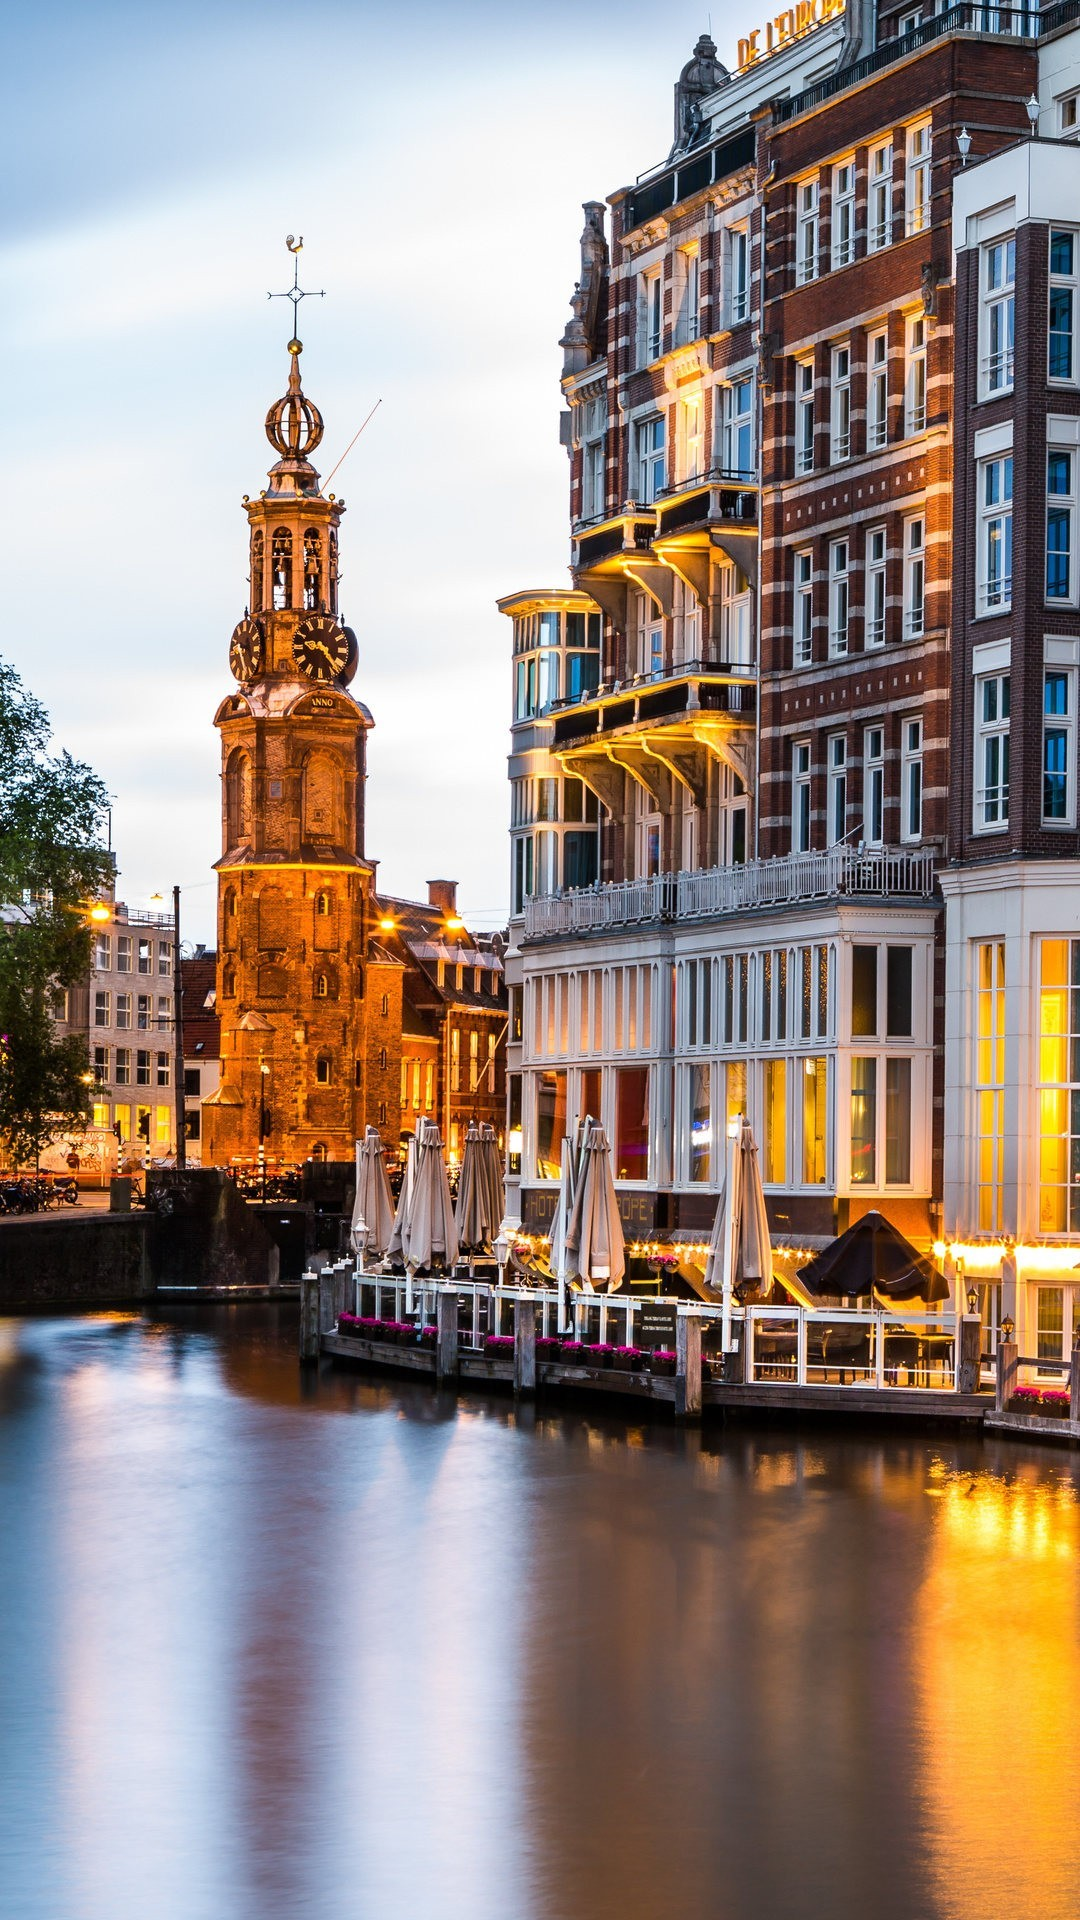 Amsterdam Hd Wallpapers For Iphone 6s Plus Wallpapers